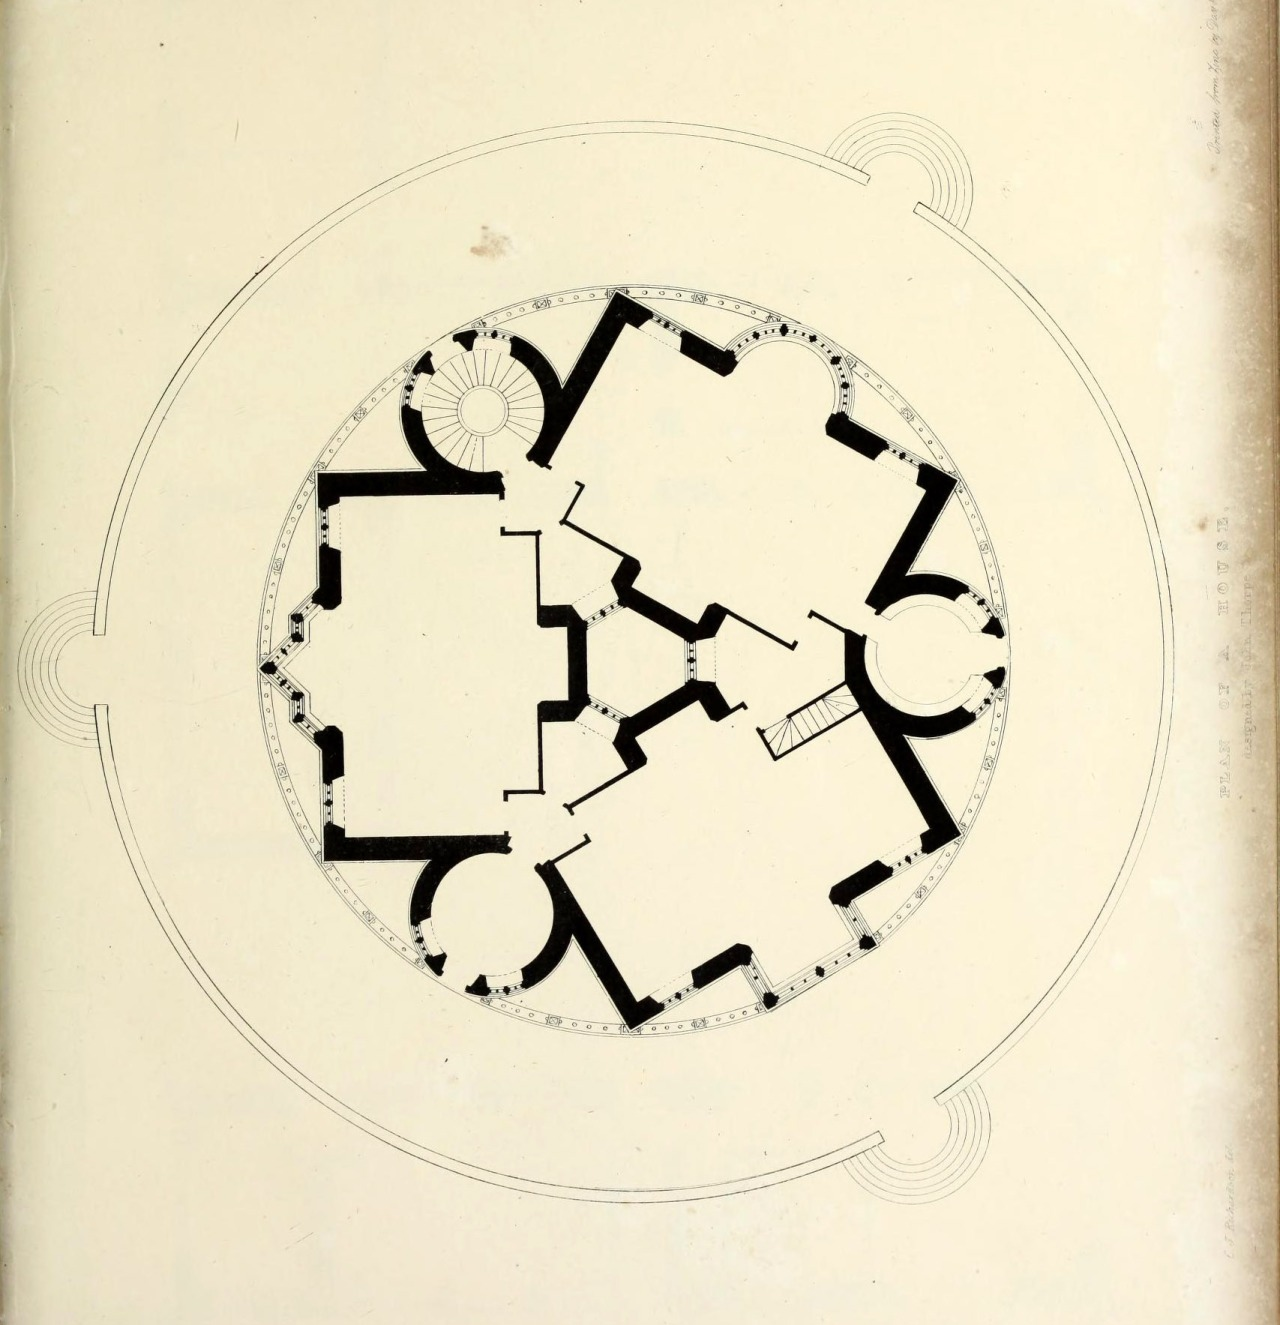 archimaps: Design for a countryside residence in a circular shape